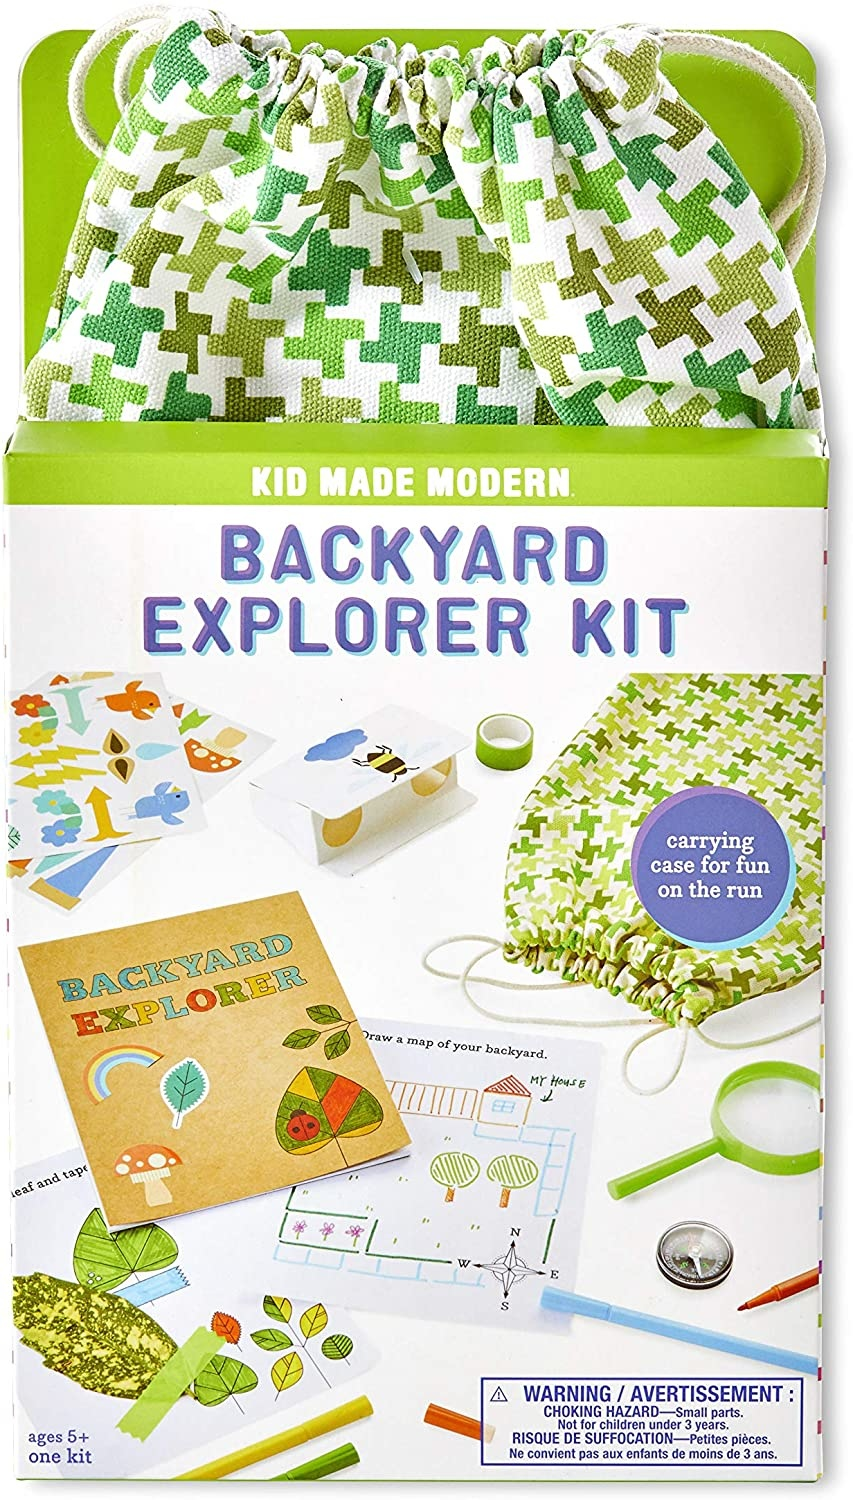 Kid Made Modern Backyard Explorer